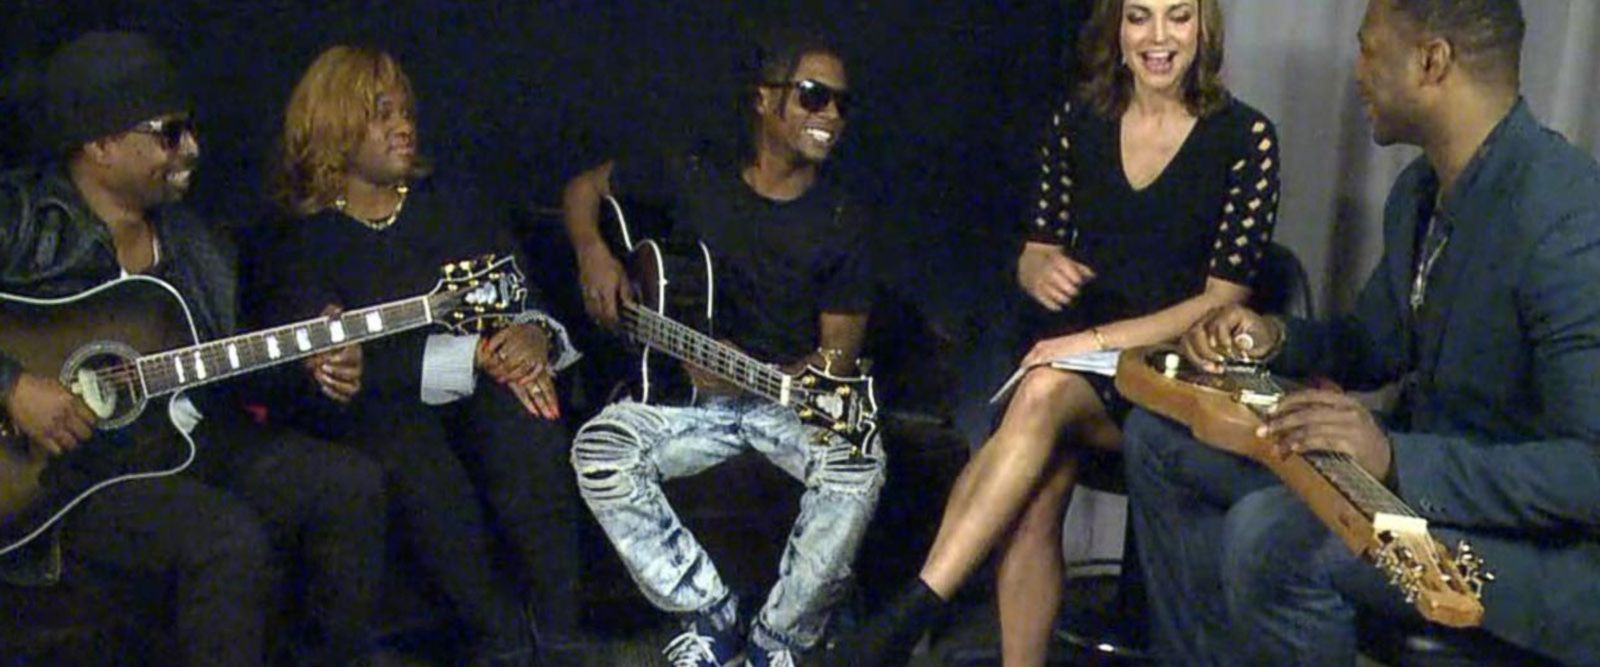 VIDEO: Musician Robert Randolph on what's next